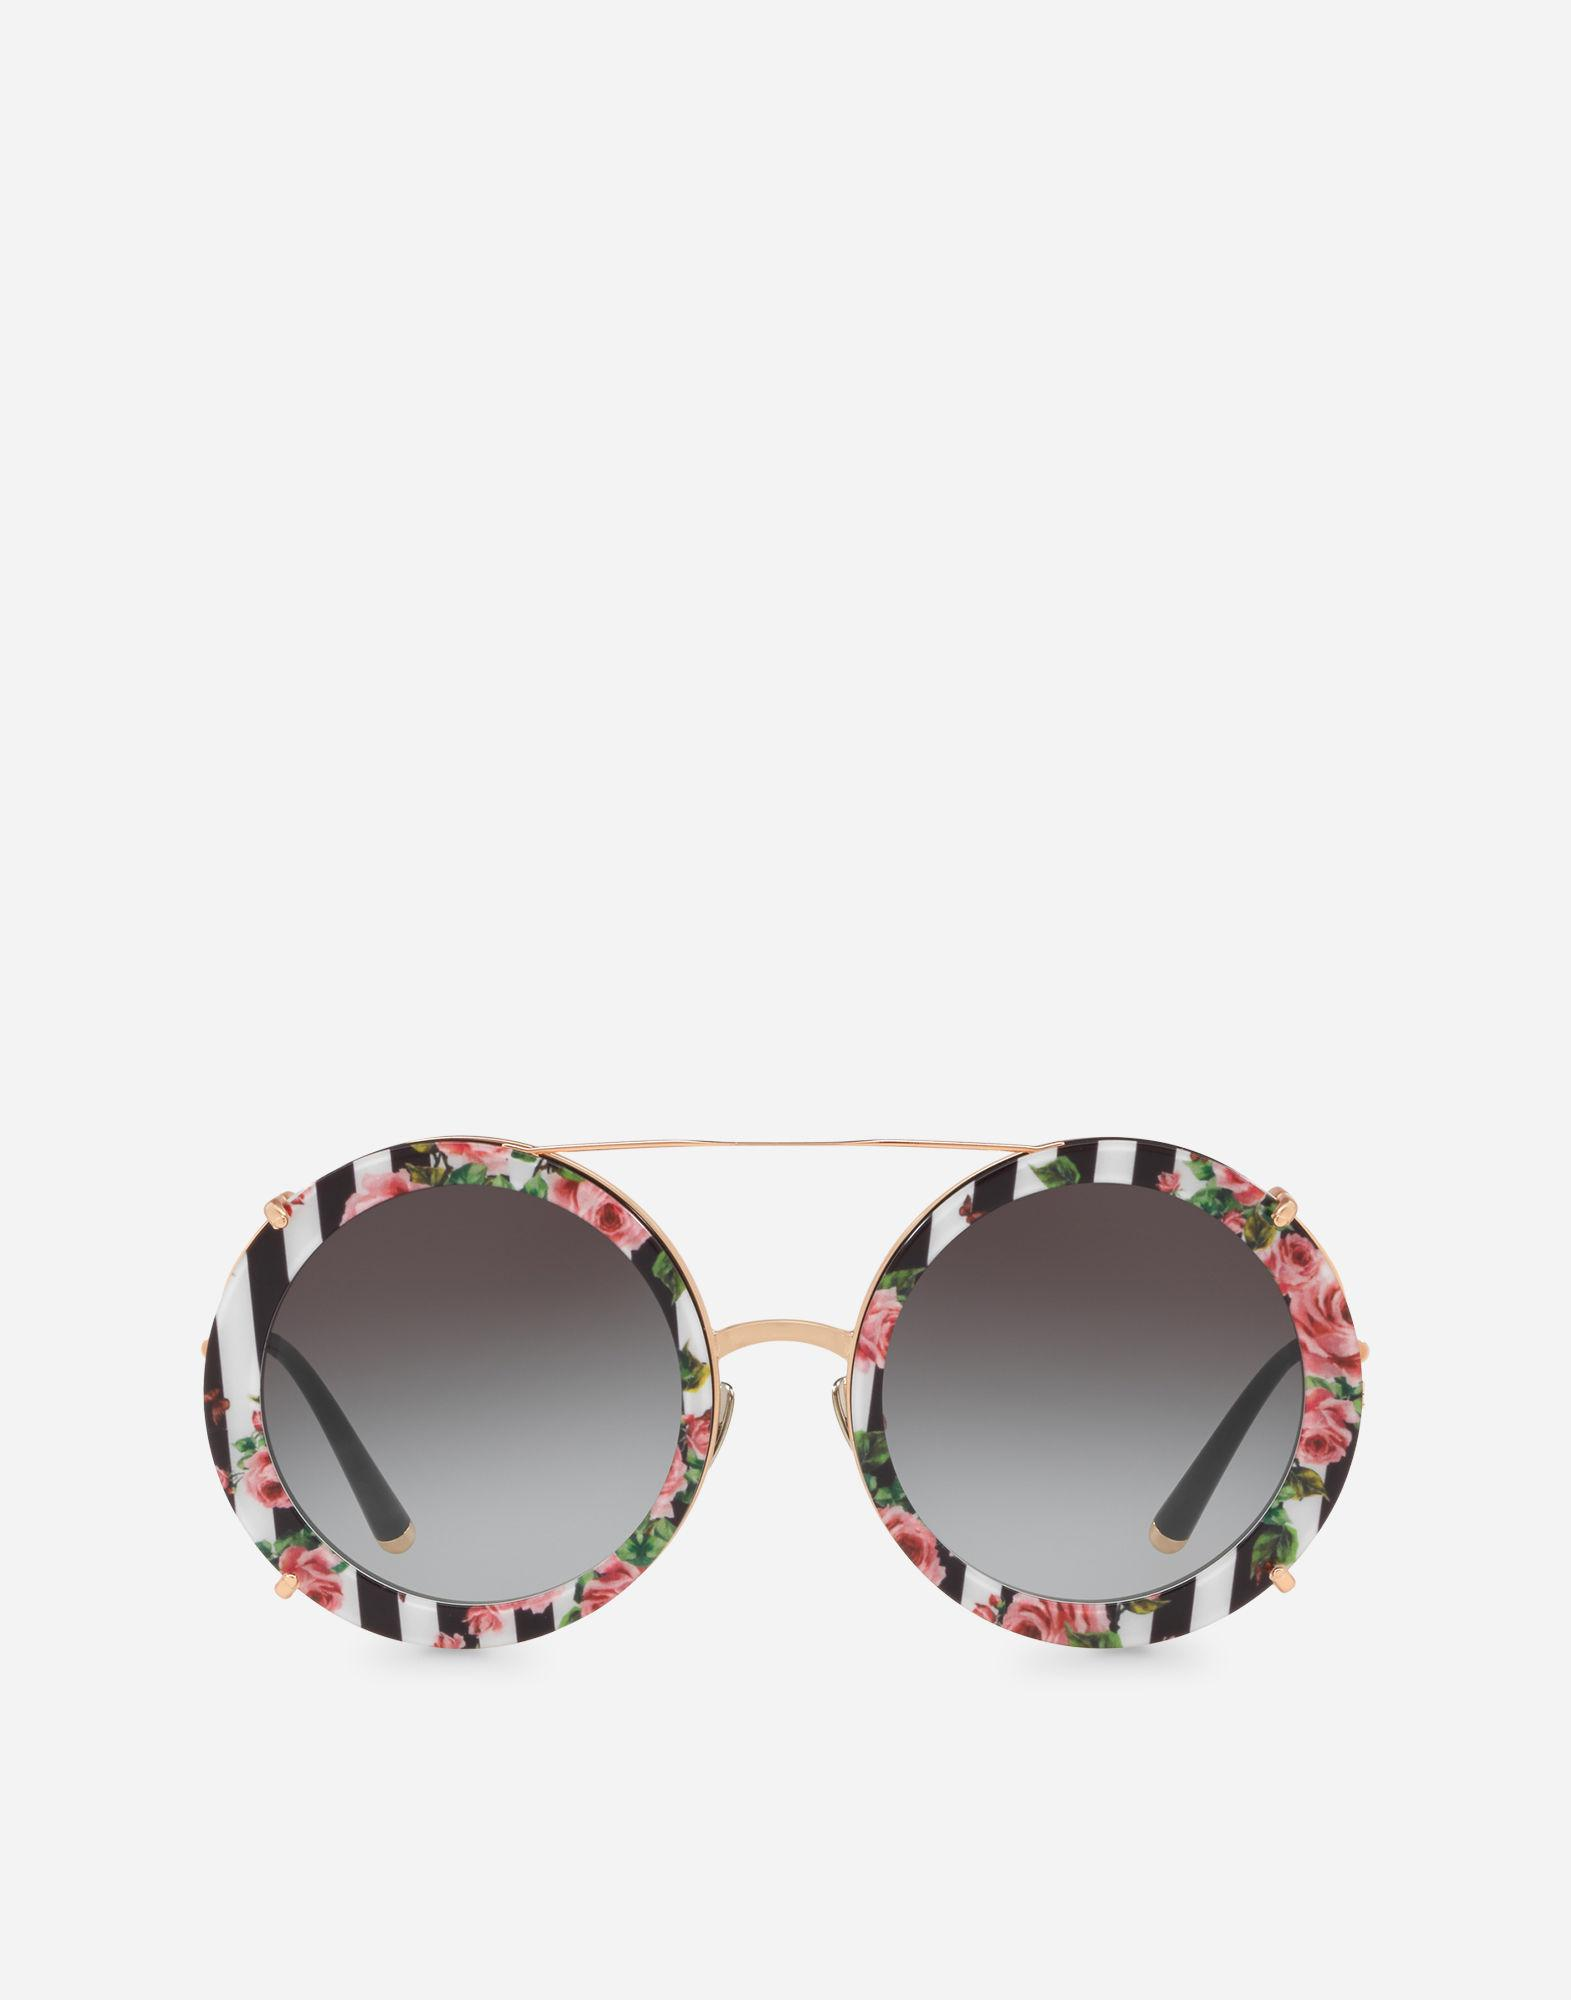 8abe4de3156 Dolce   Gabbana. Women s Metallic Round Clip-on Sunglasses In Gold Metal  With Stripe And Rose Print